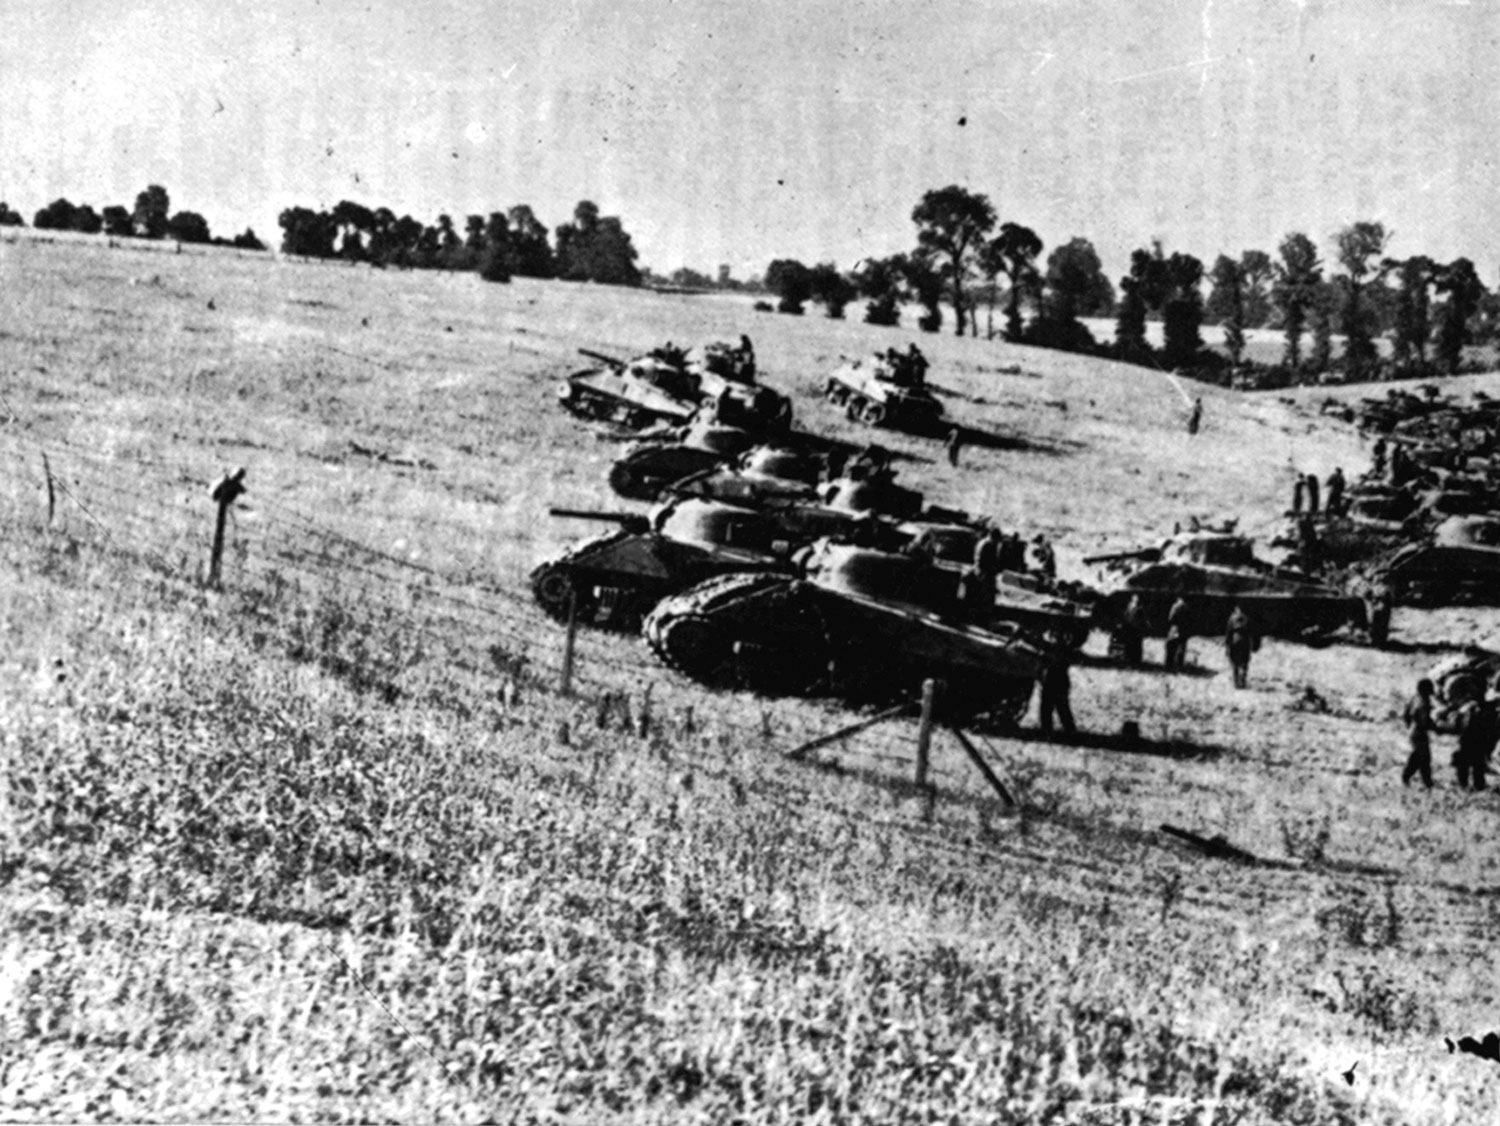 Photo of Sherman tanks in Normandy.